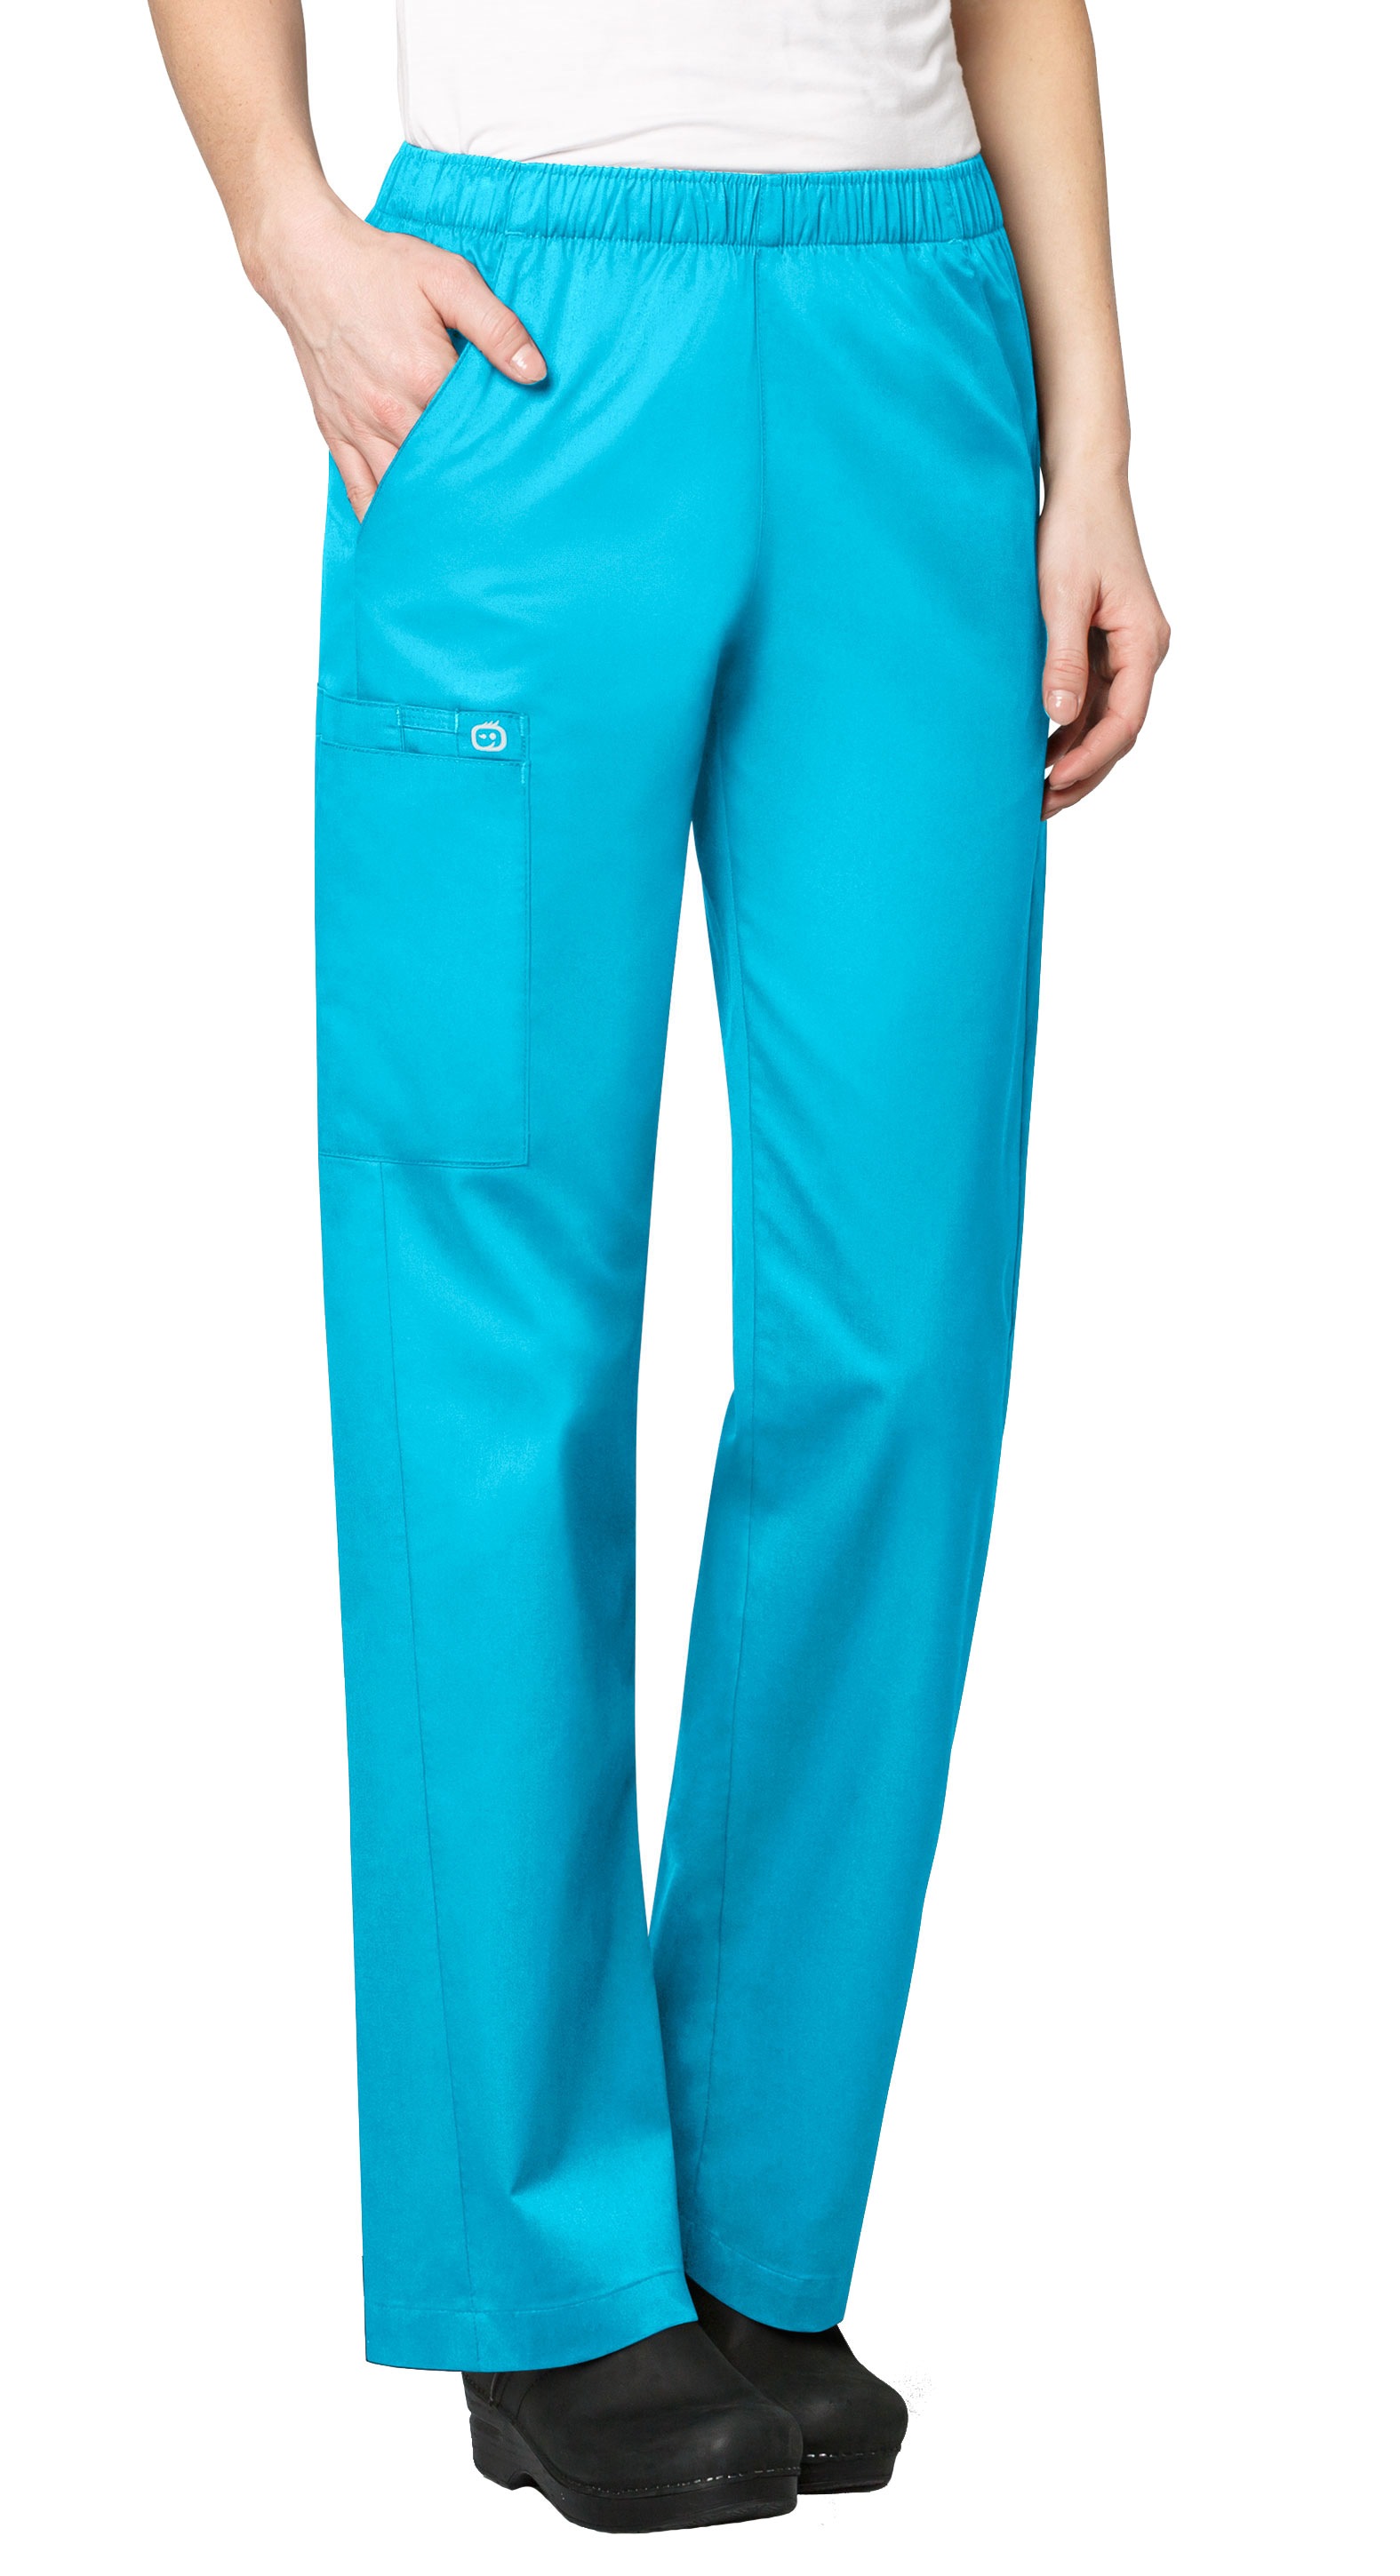 Womens Elastic Waist Pant by WonderWink�